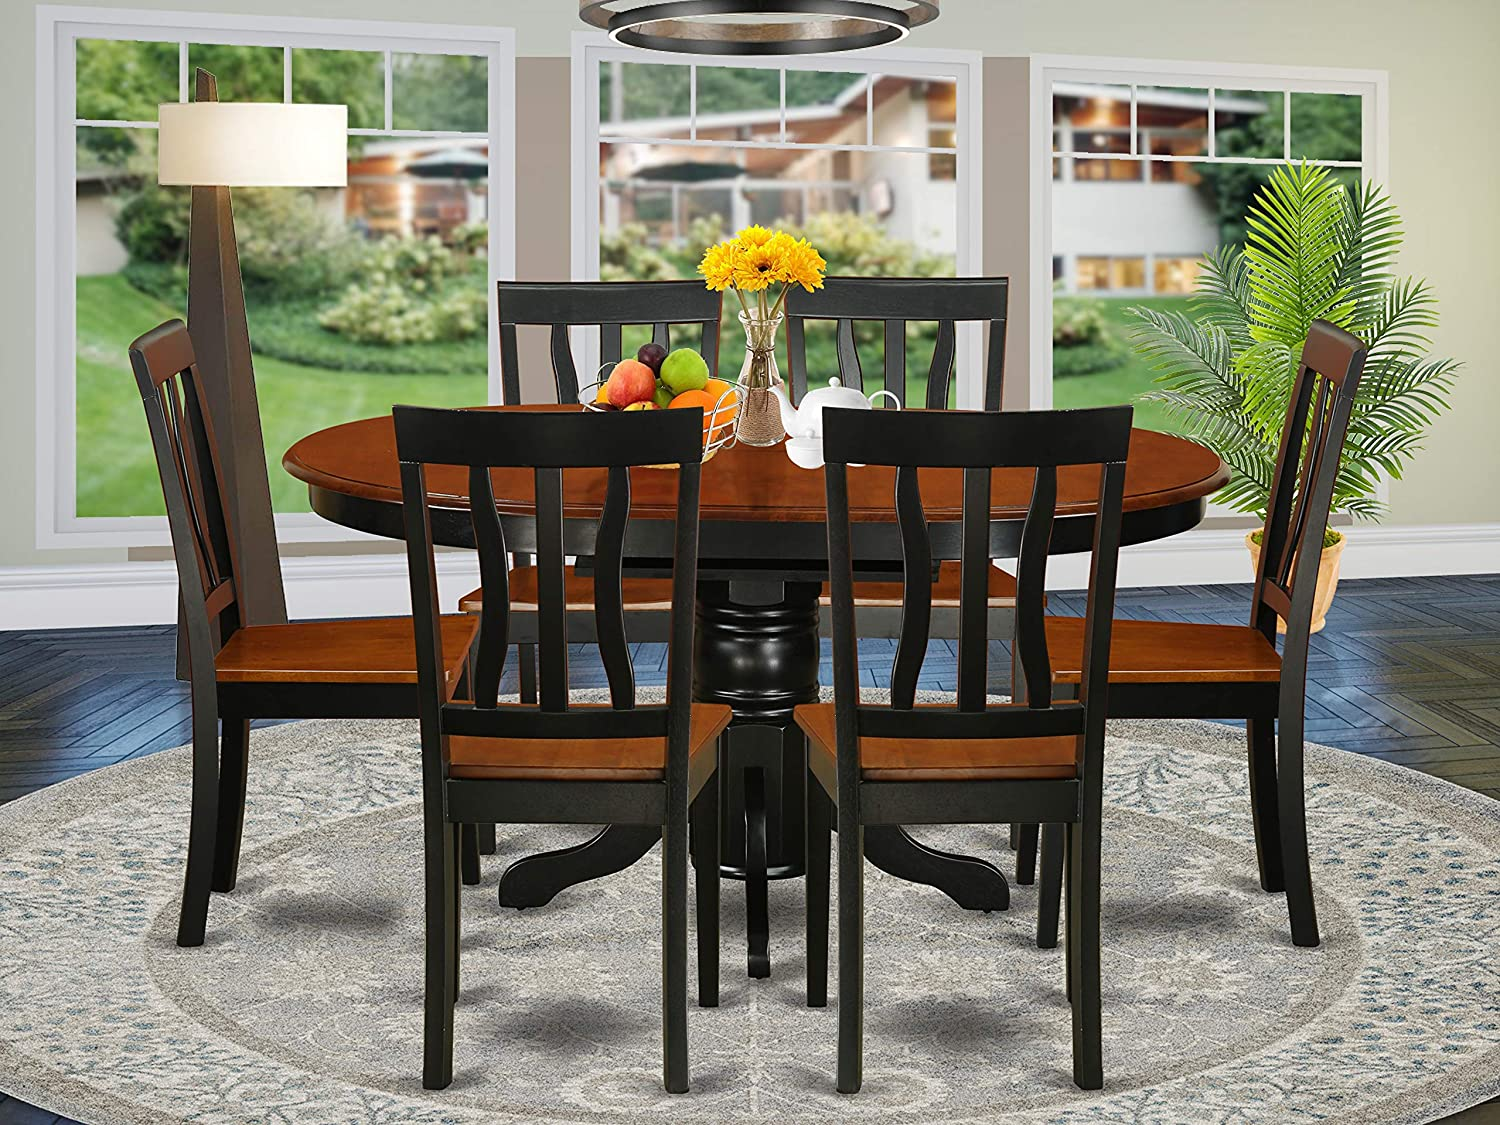 East West Furniture AVAT9 BLK W 9 piece dining table set 9 Great kitchen  chairs   A Beautiful round kitchen table  Wooden Seat and black and cherry  ...